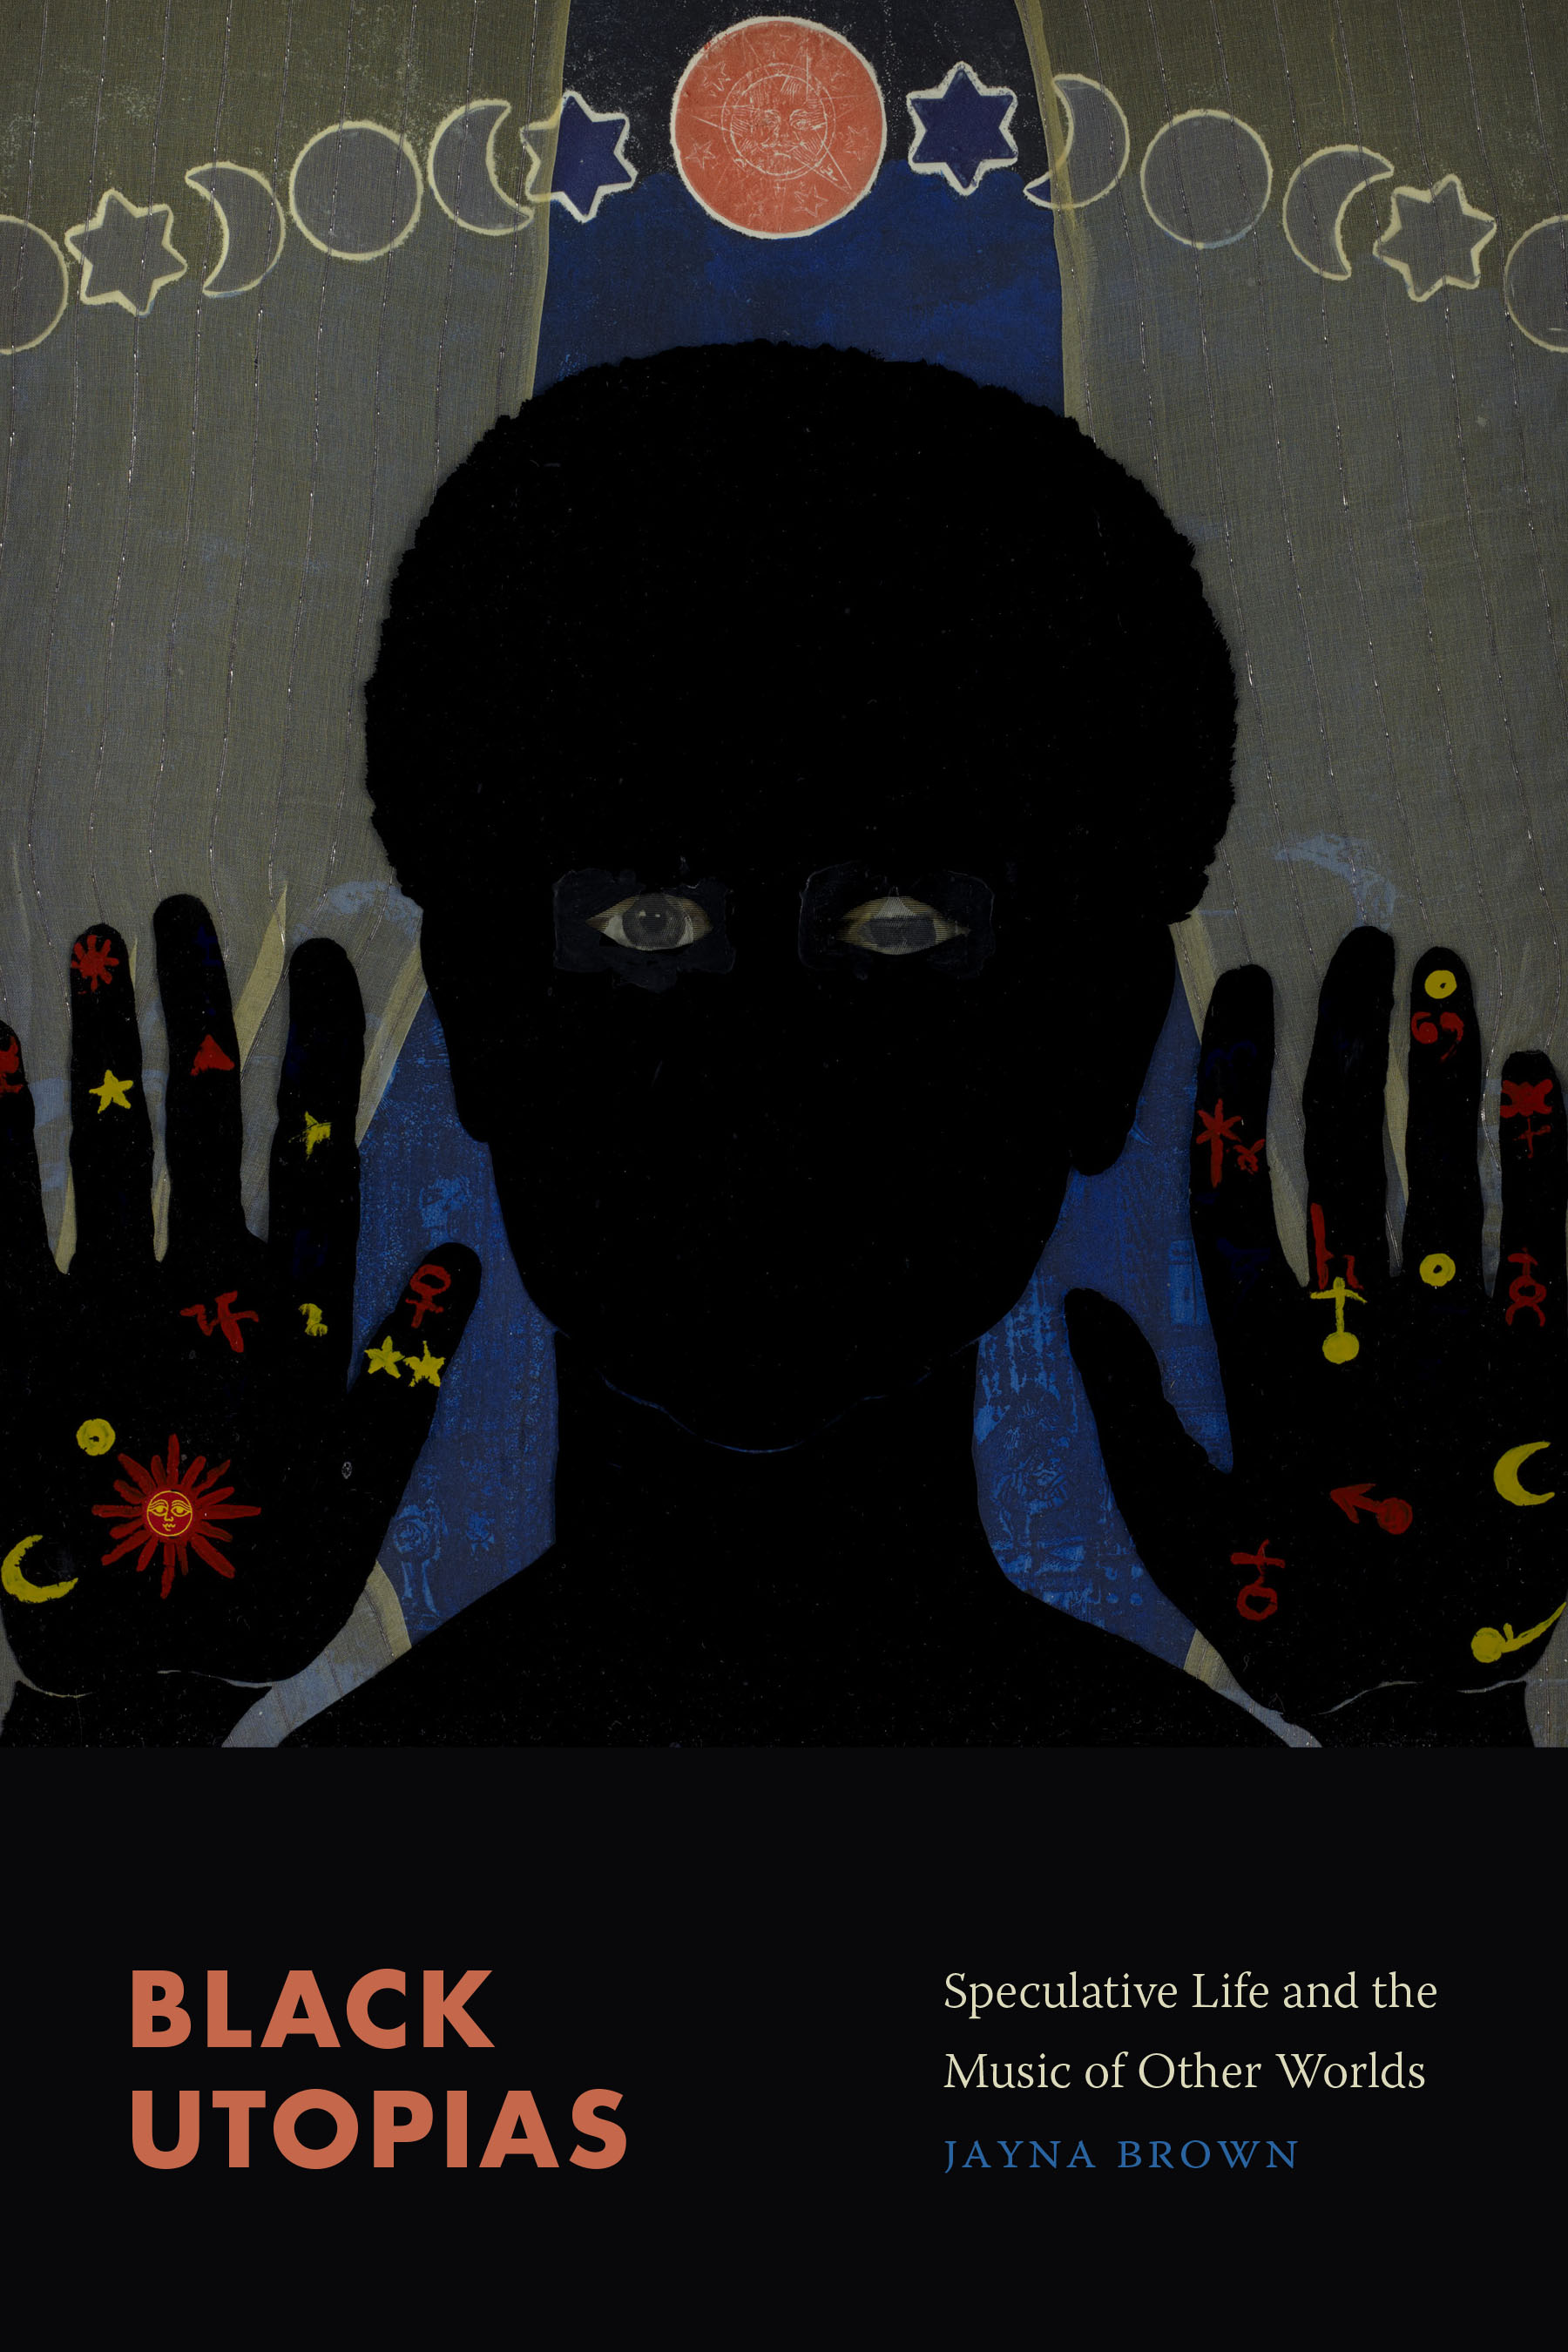 Black Utopias: Speculative Life and the Music of Other Worlds